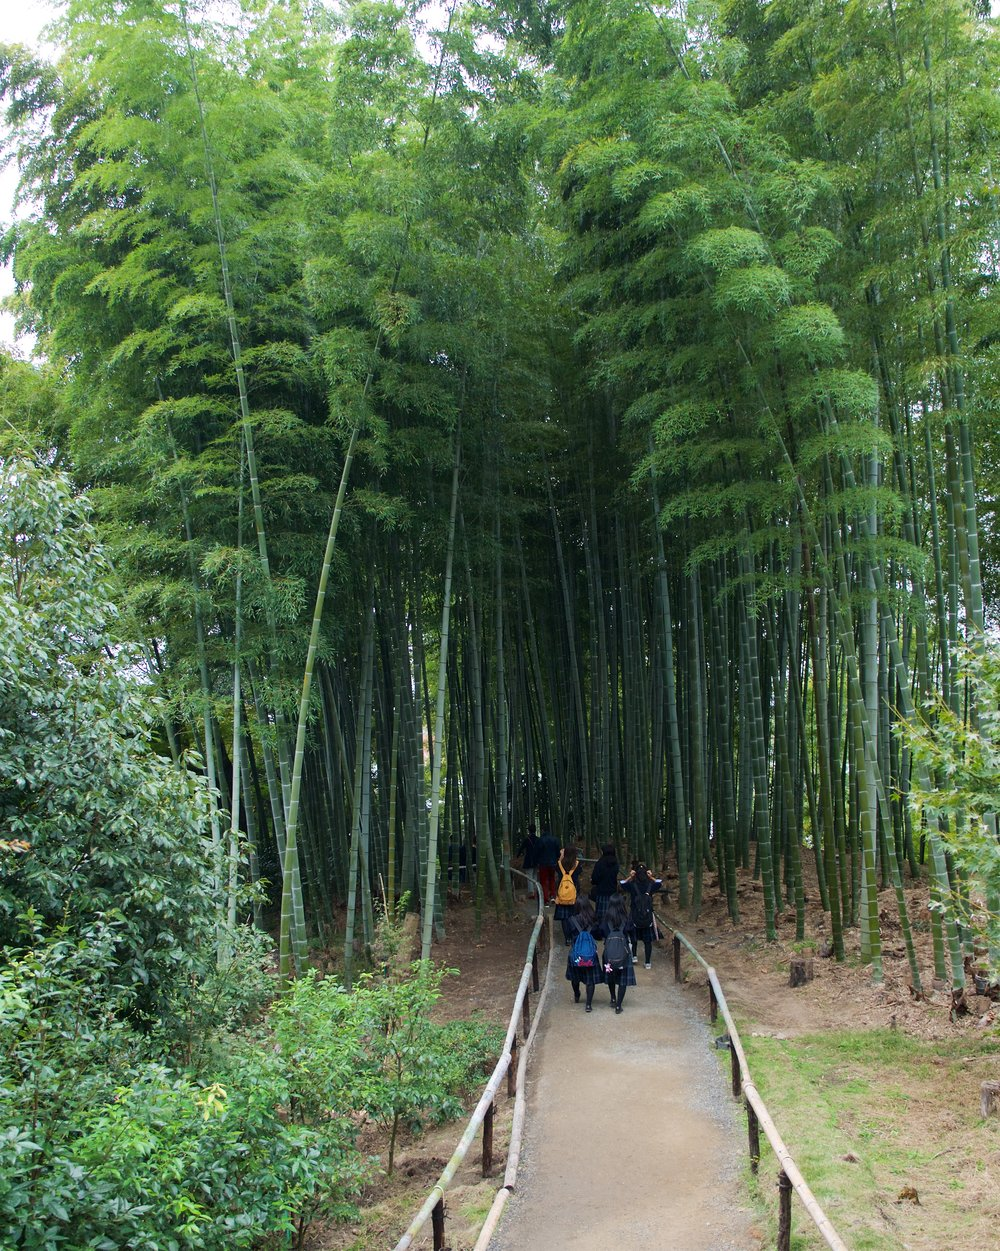 Bamboo forest at Kodaiji Temple